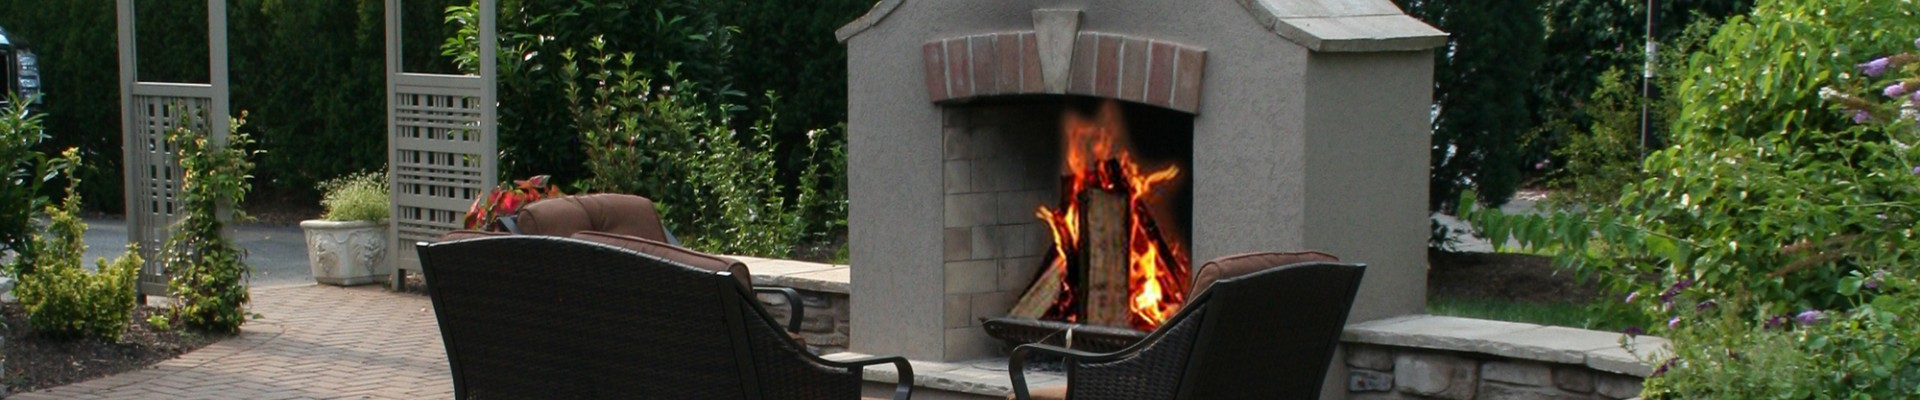 Fire Place Builder in Lancaster PA